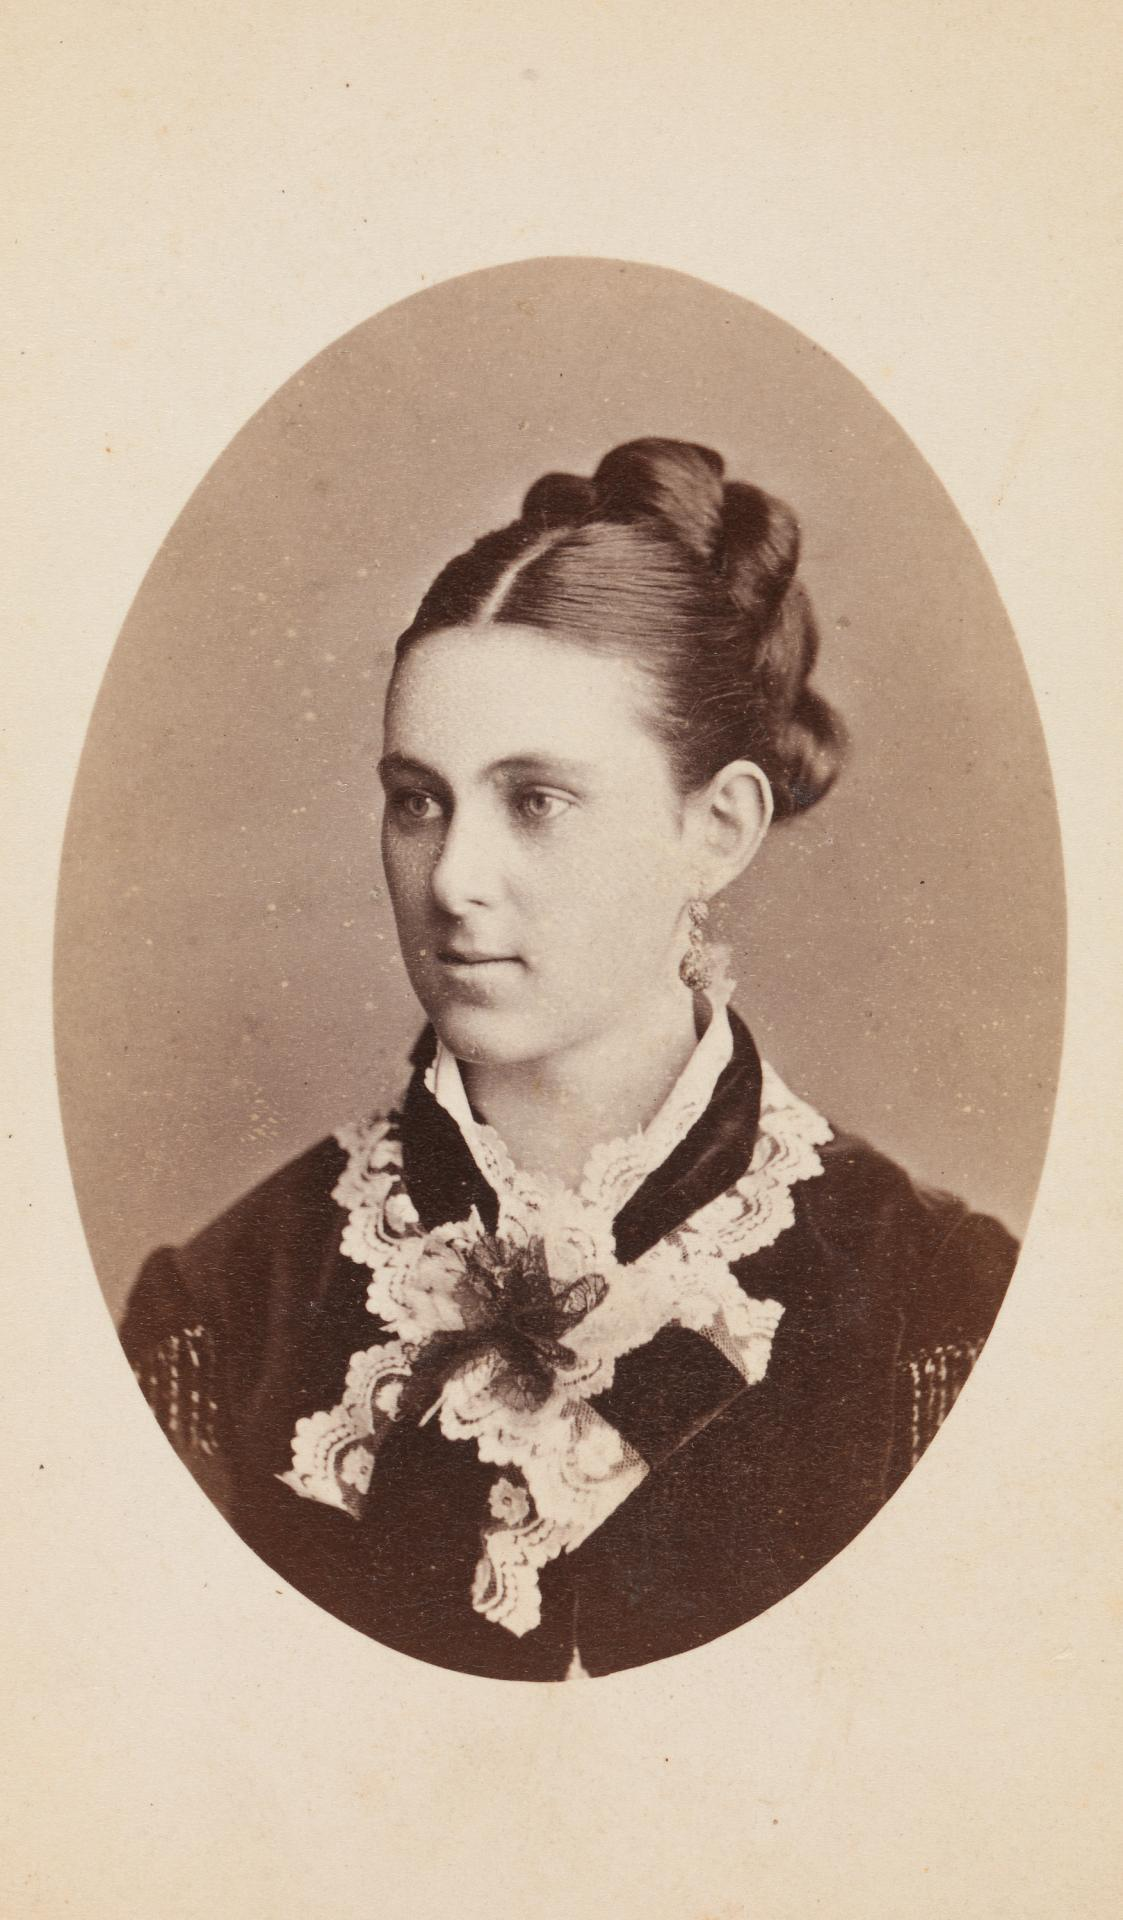 No title (Woman with elaborate hairstyle and frilly collar), carte-de-visite